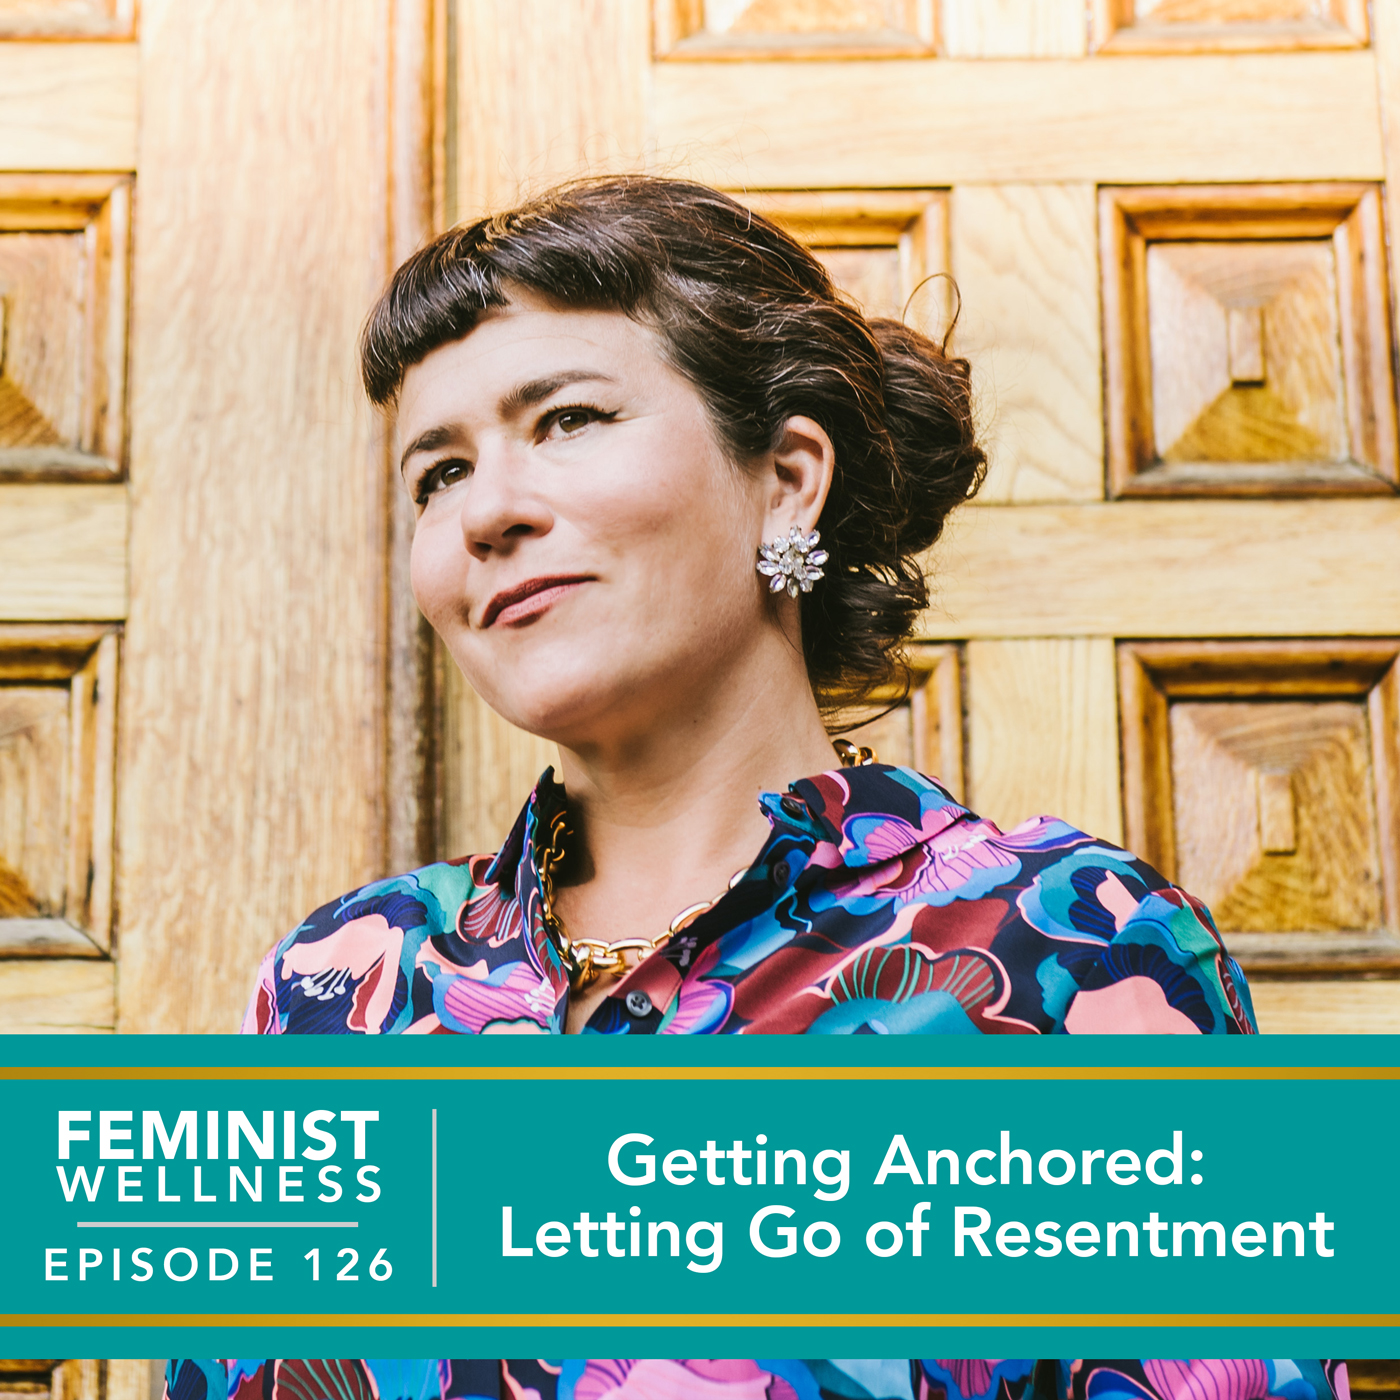 Feminist Wellness with Victoria Albina | Getting Anchored: Letting Go of Resentment